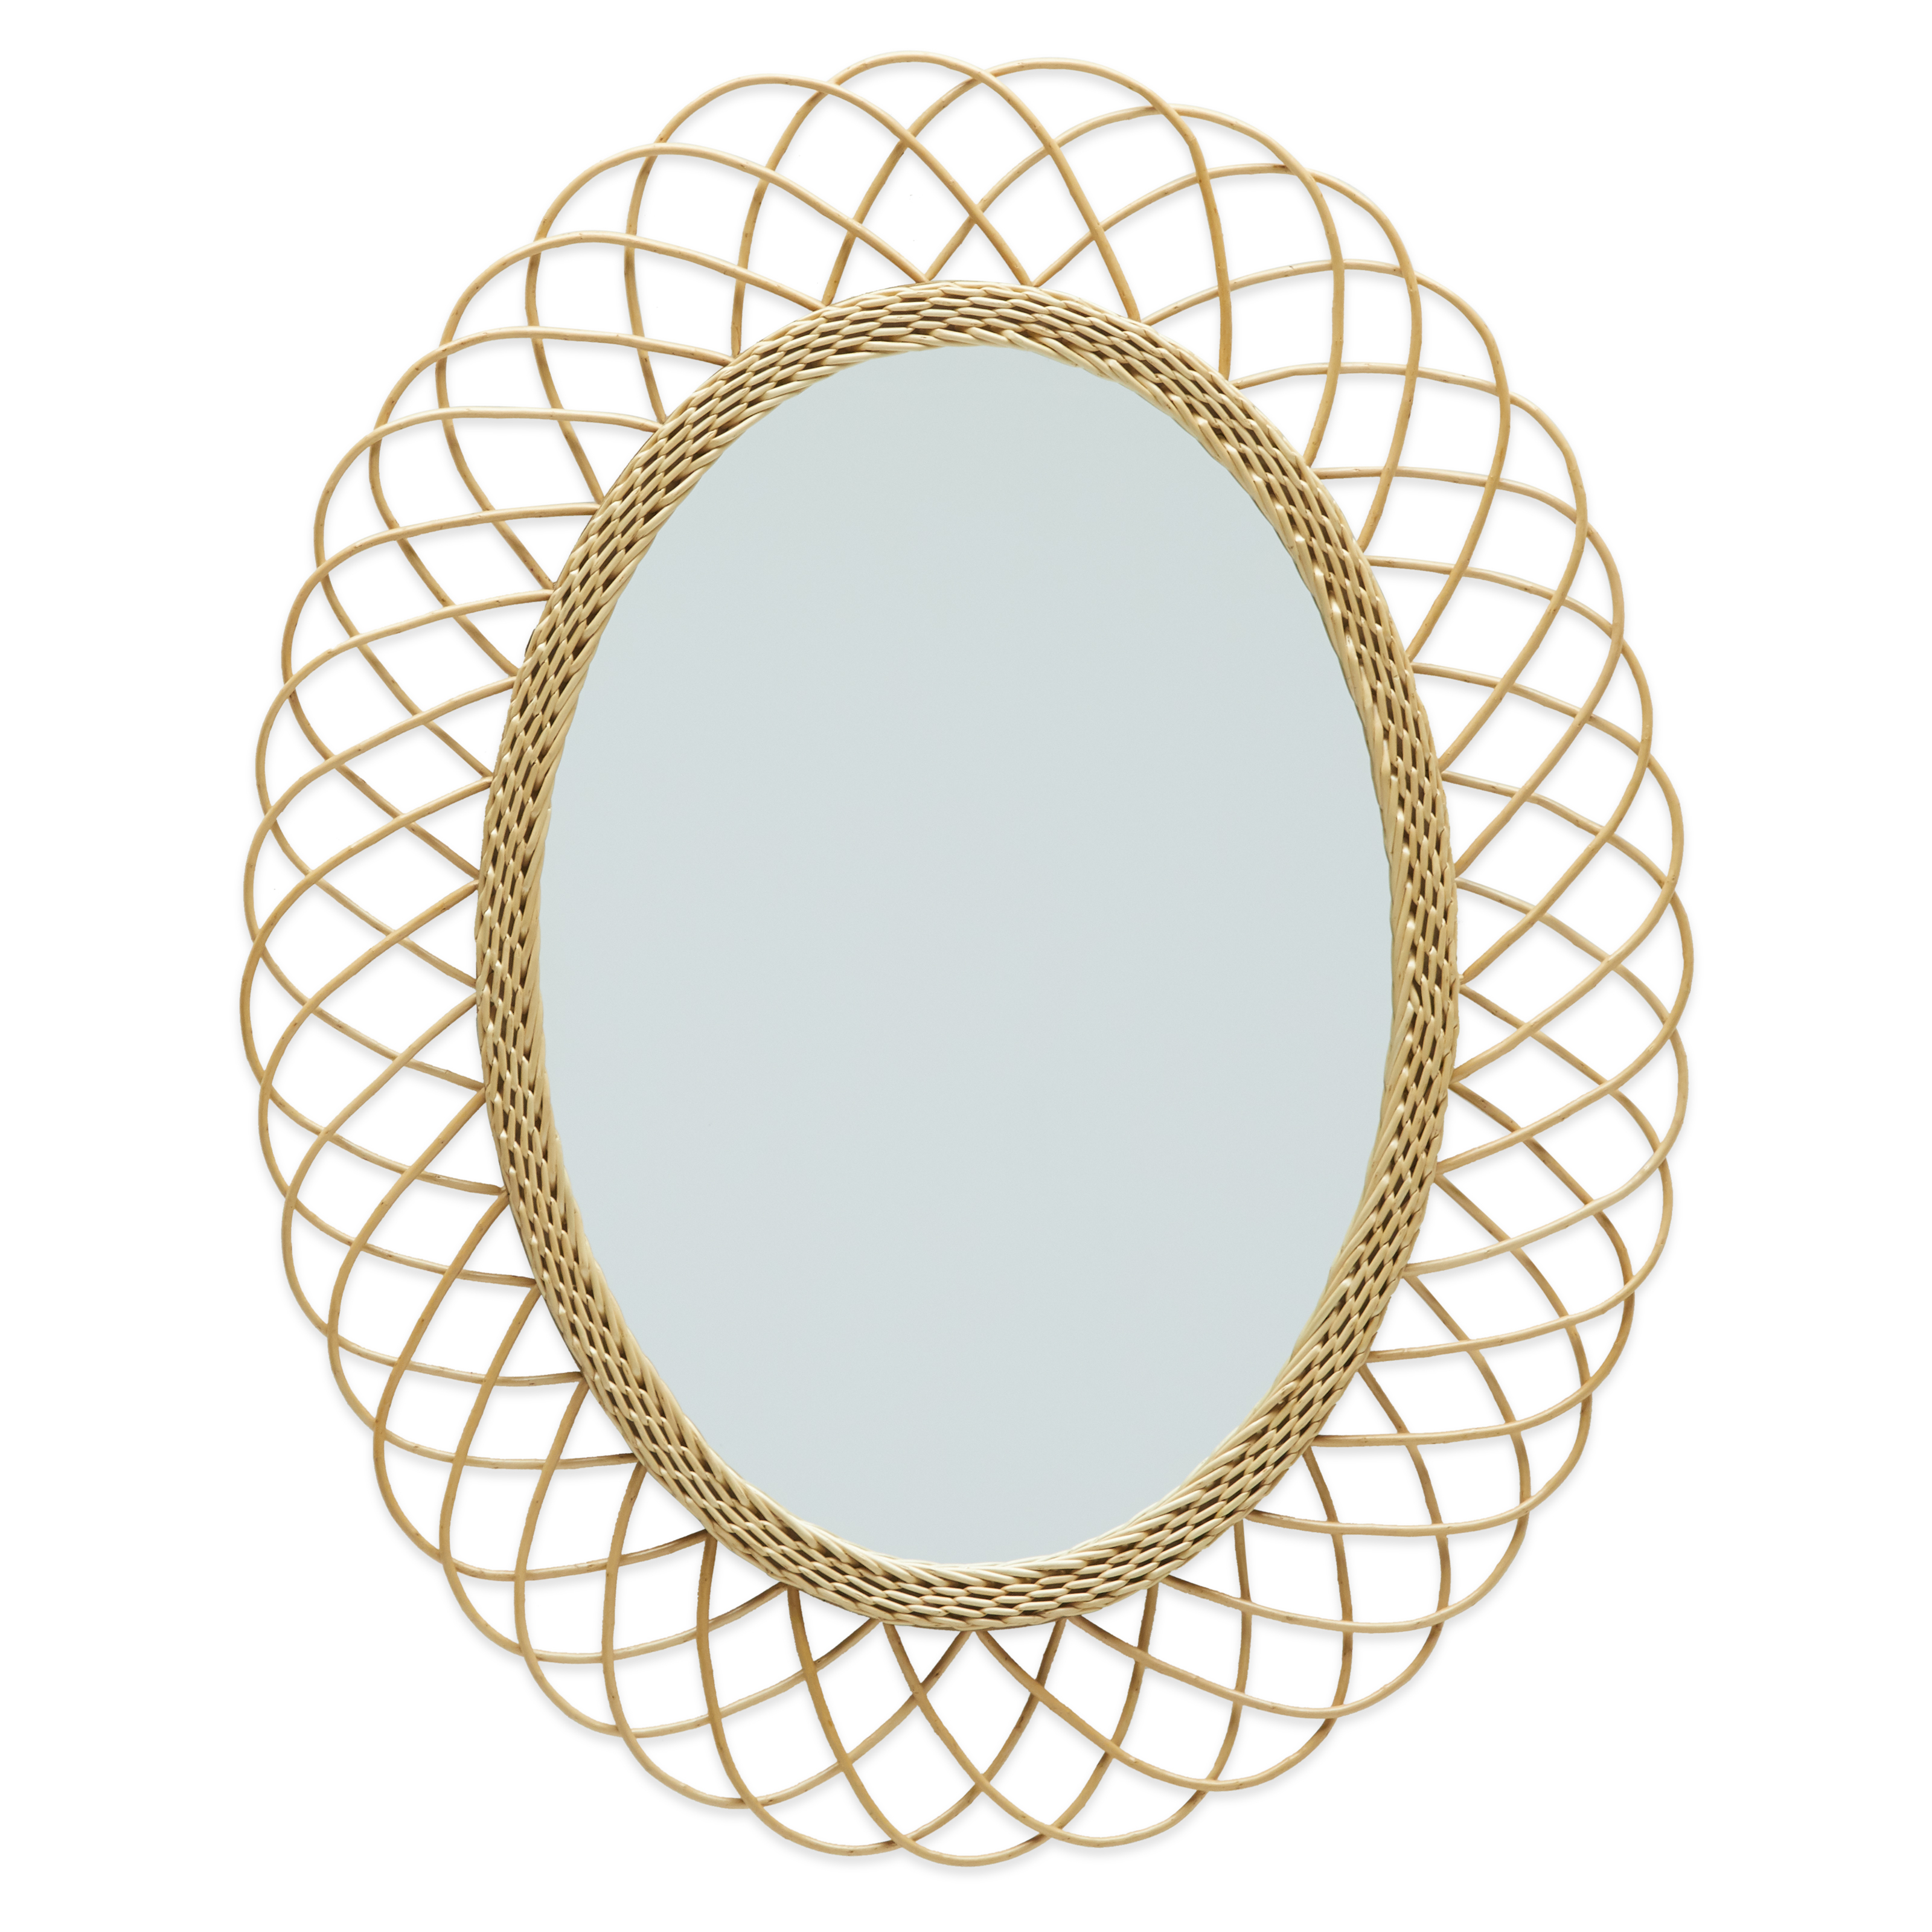 Rattan Oval Wall Mirrordrew Barrymore Flower Home – Walmart With Regard To Famous Rattan Wall Mirrors (Gallery 11 of 20)